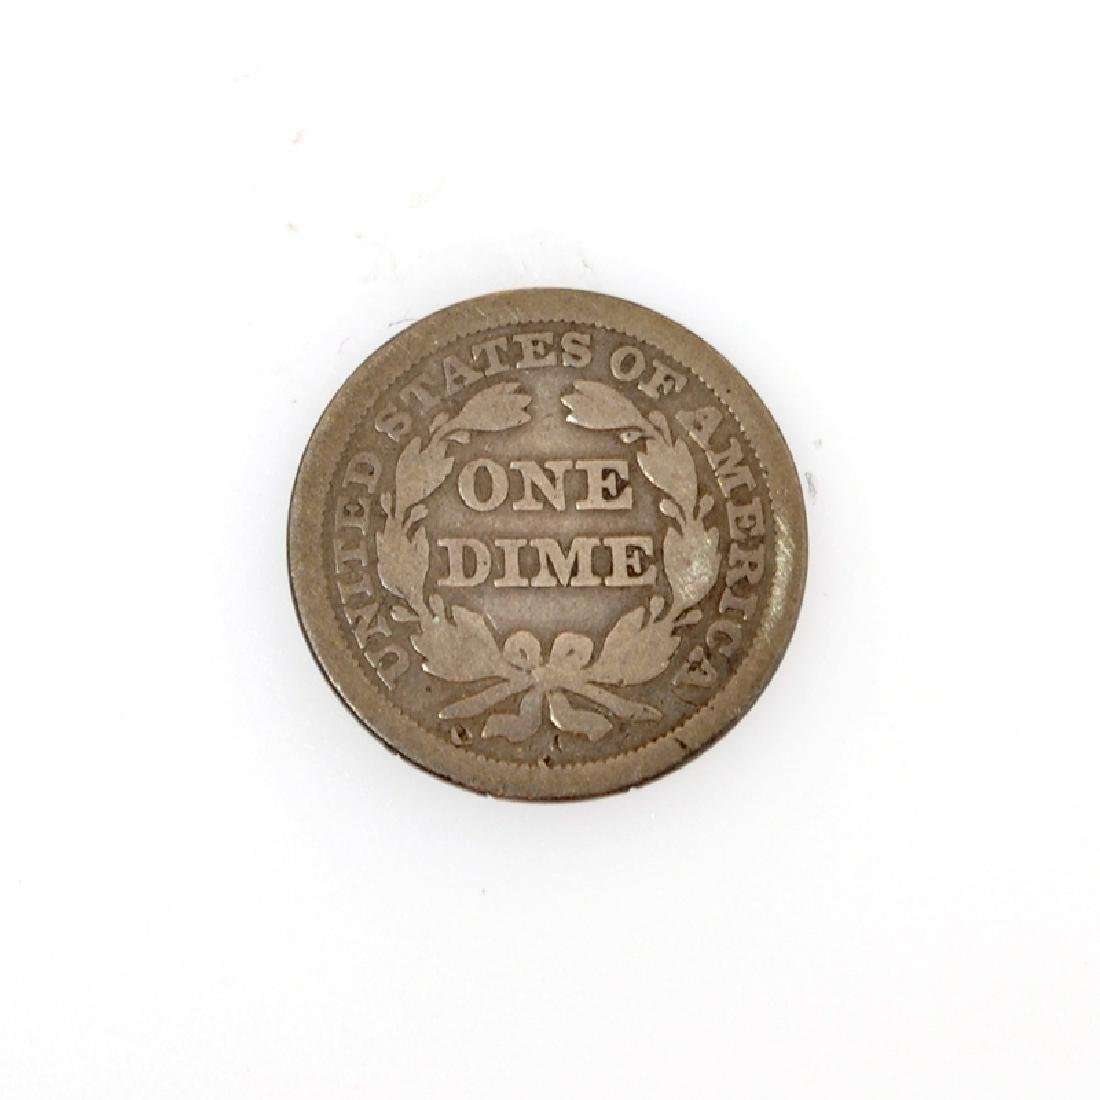 1856 Liberty Seated One Dime Coin - 2